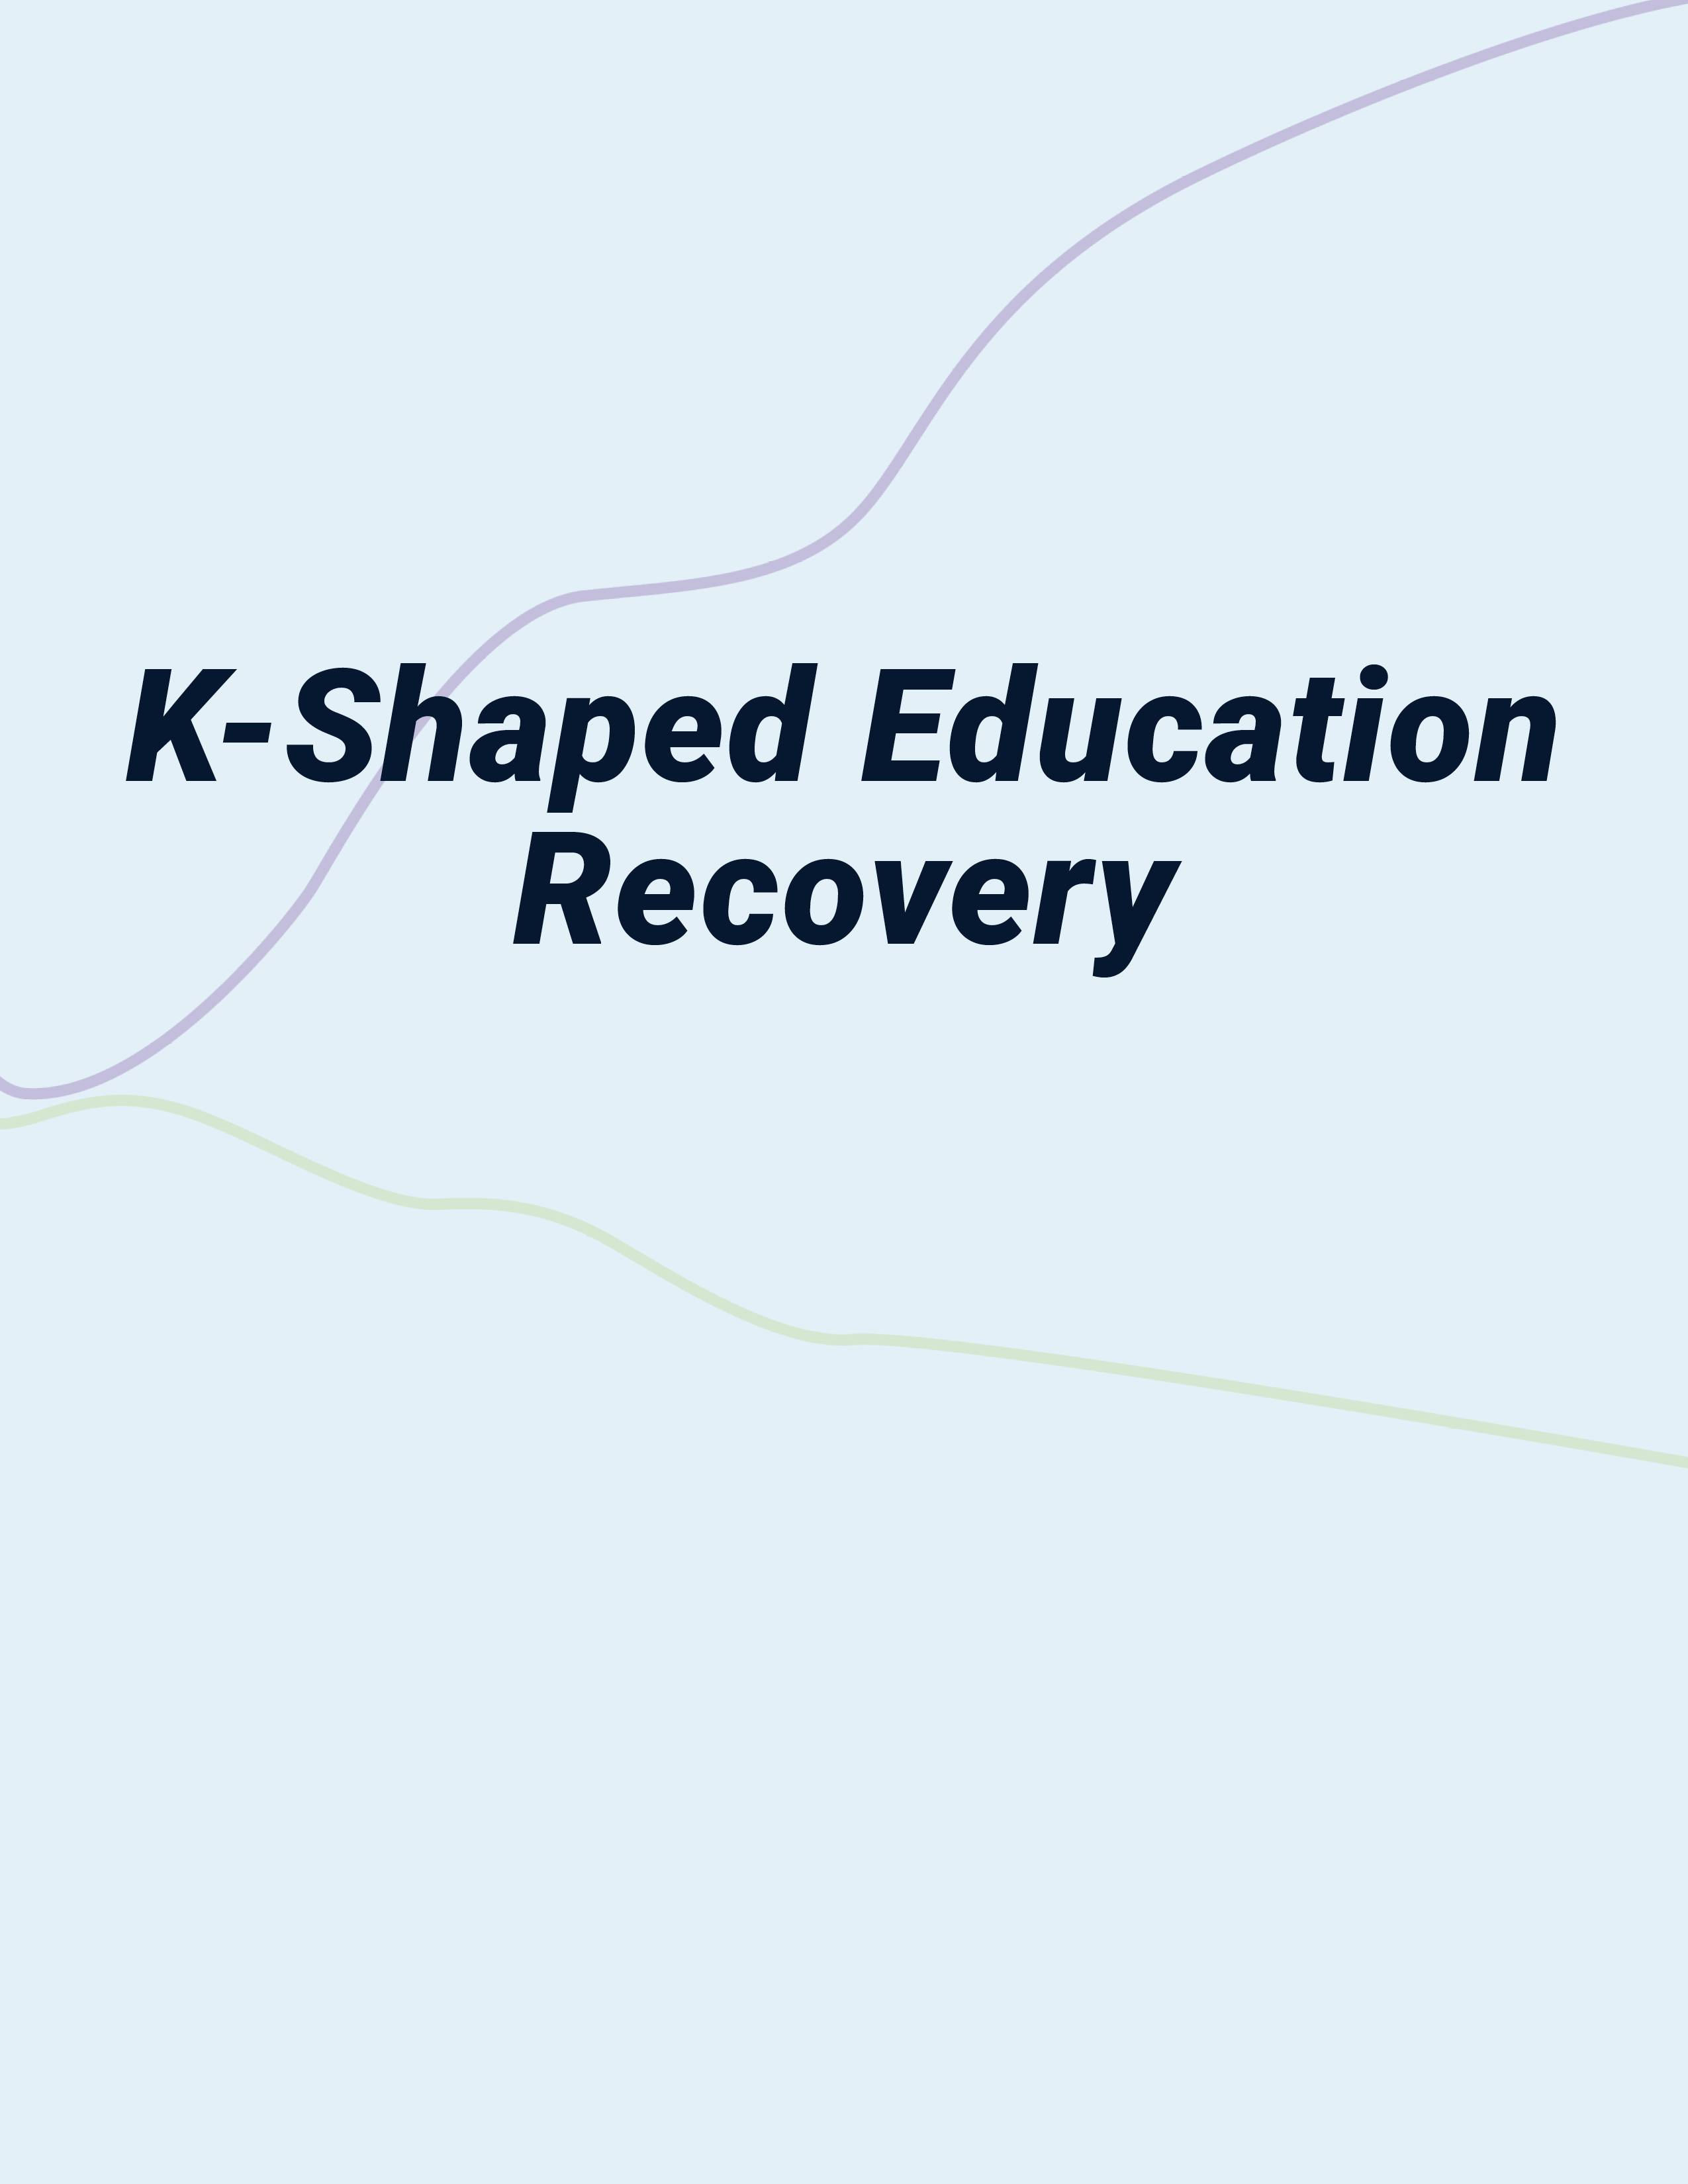 K Shaped Education Recovery Guide page 3